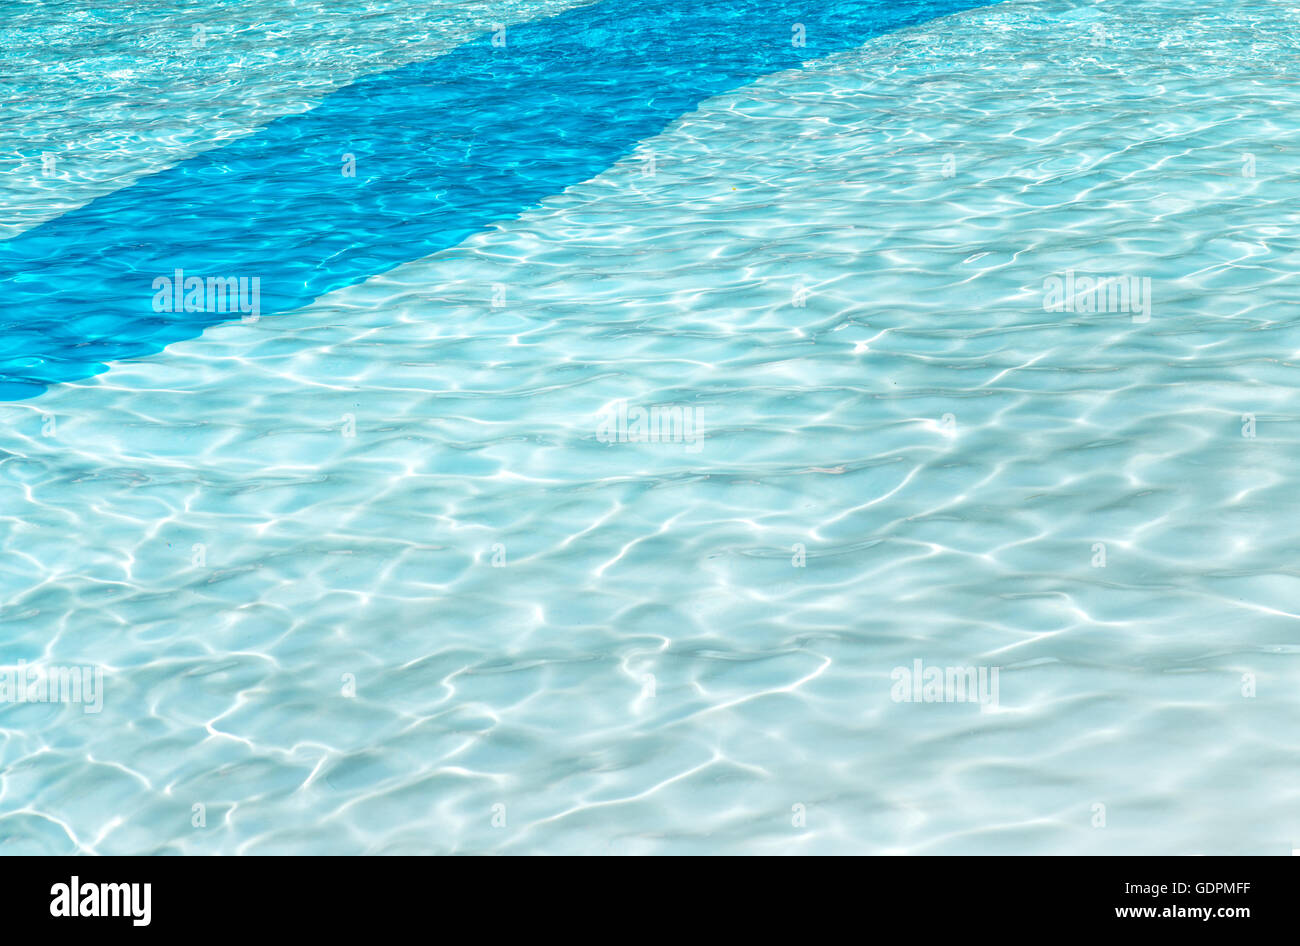 clear  swimming pool background with sun reflection ripples in a two tone blue solid curve patten, darker strip - Stock Image